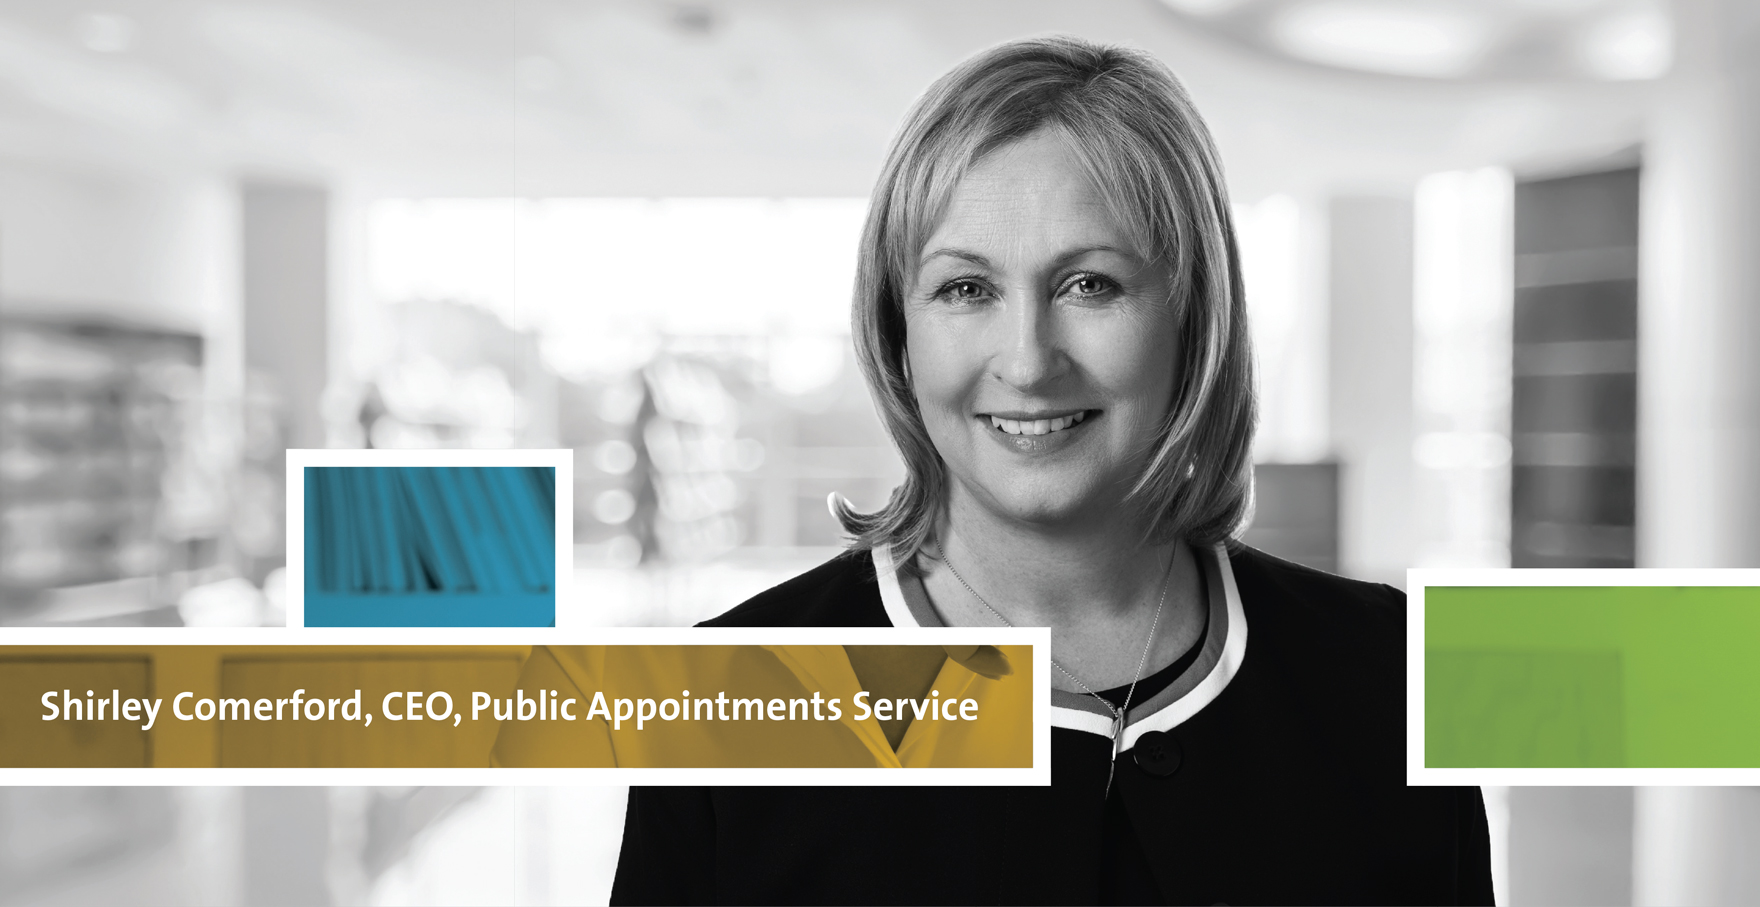 Shirley Comerford, CEO, Public Appointments Service